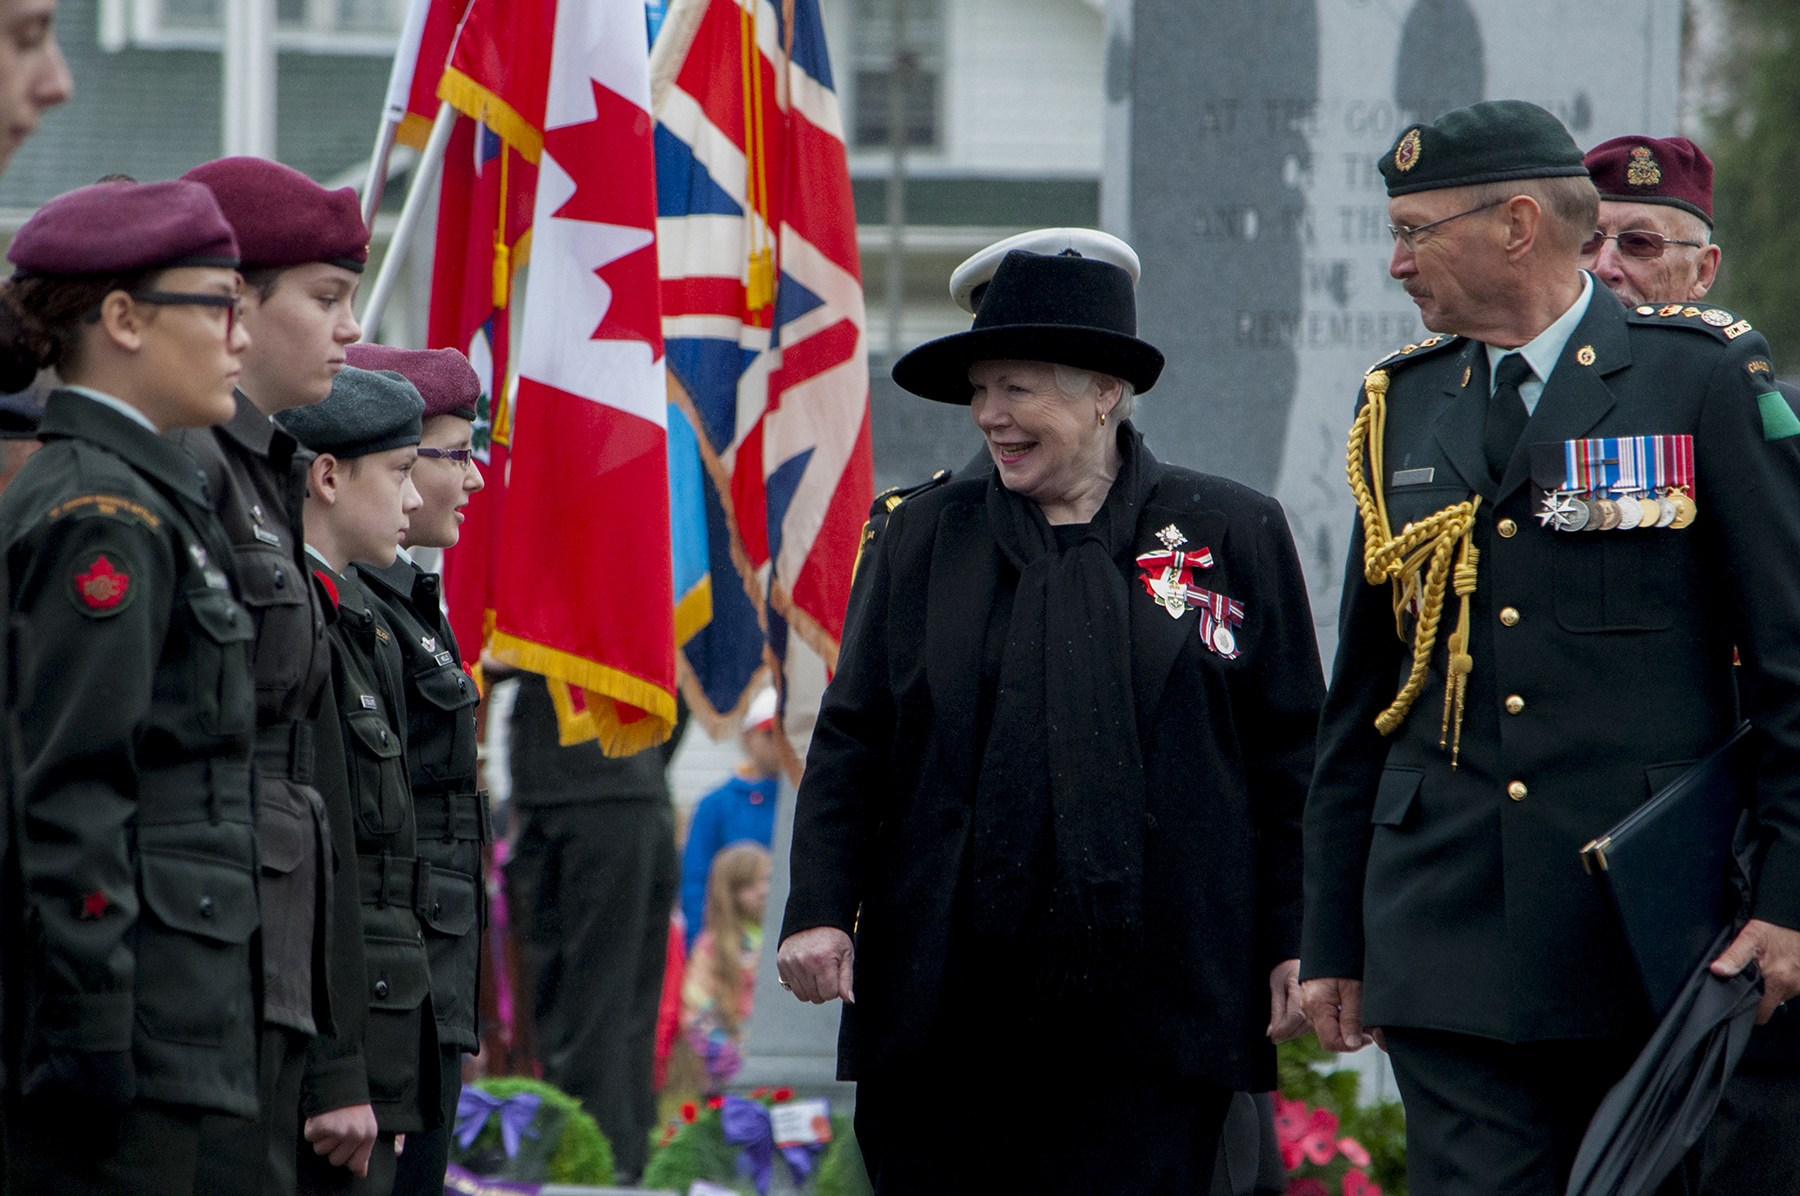 Accompanied by Honorary Lieutenant-Colonel Ian Sutherland, Lieutenant Governor of Ontario Elizabeth Downdeswell greets members of 1 Canadian Parachute Battalion Cadet Group, 8 Wing Trenton's Aerospace Telecommunication and Engineering Support Squadron, and Legion Branch #100 following the November 11, 2015, Remembrance Day ceremony in Brighton, Ontario. PHOTO: Natalie Wannamaker